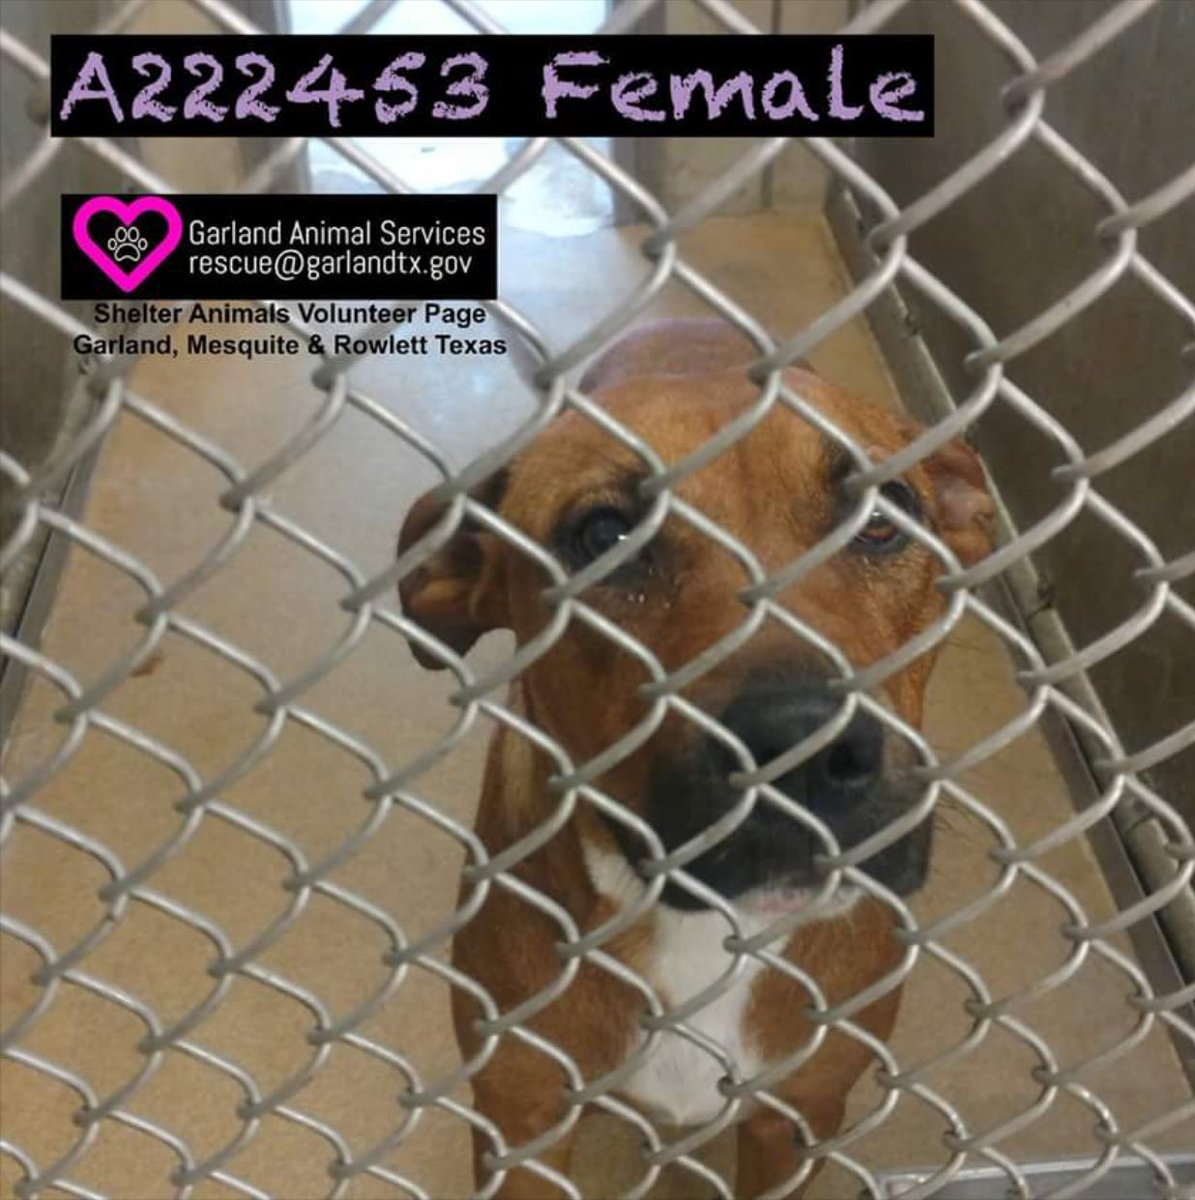 #Garland #TX This #urgent beautiful girl Tawny is going unnoticed. Please help!#rescue #adopt #foster #share #pledge  http:// fb.me/7Yx0AhLzp  &nbsp;  <br>http://pic.twitter.com/YBEmT2A5m7